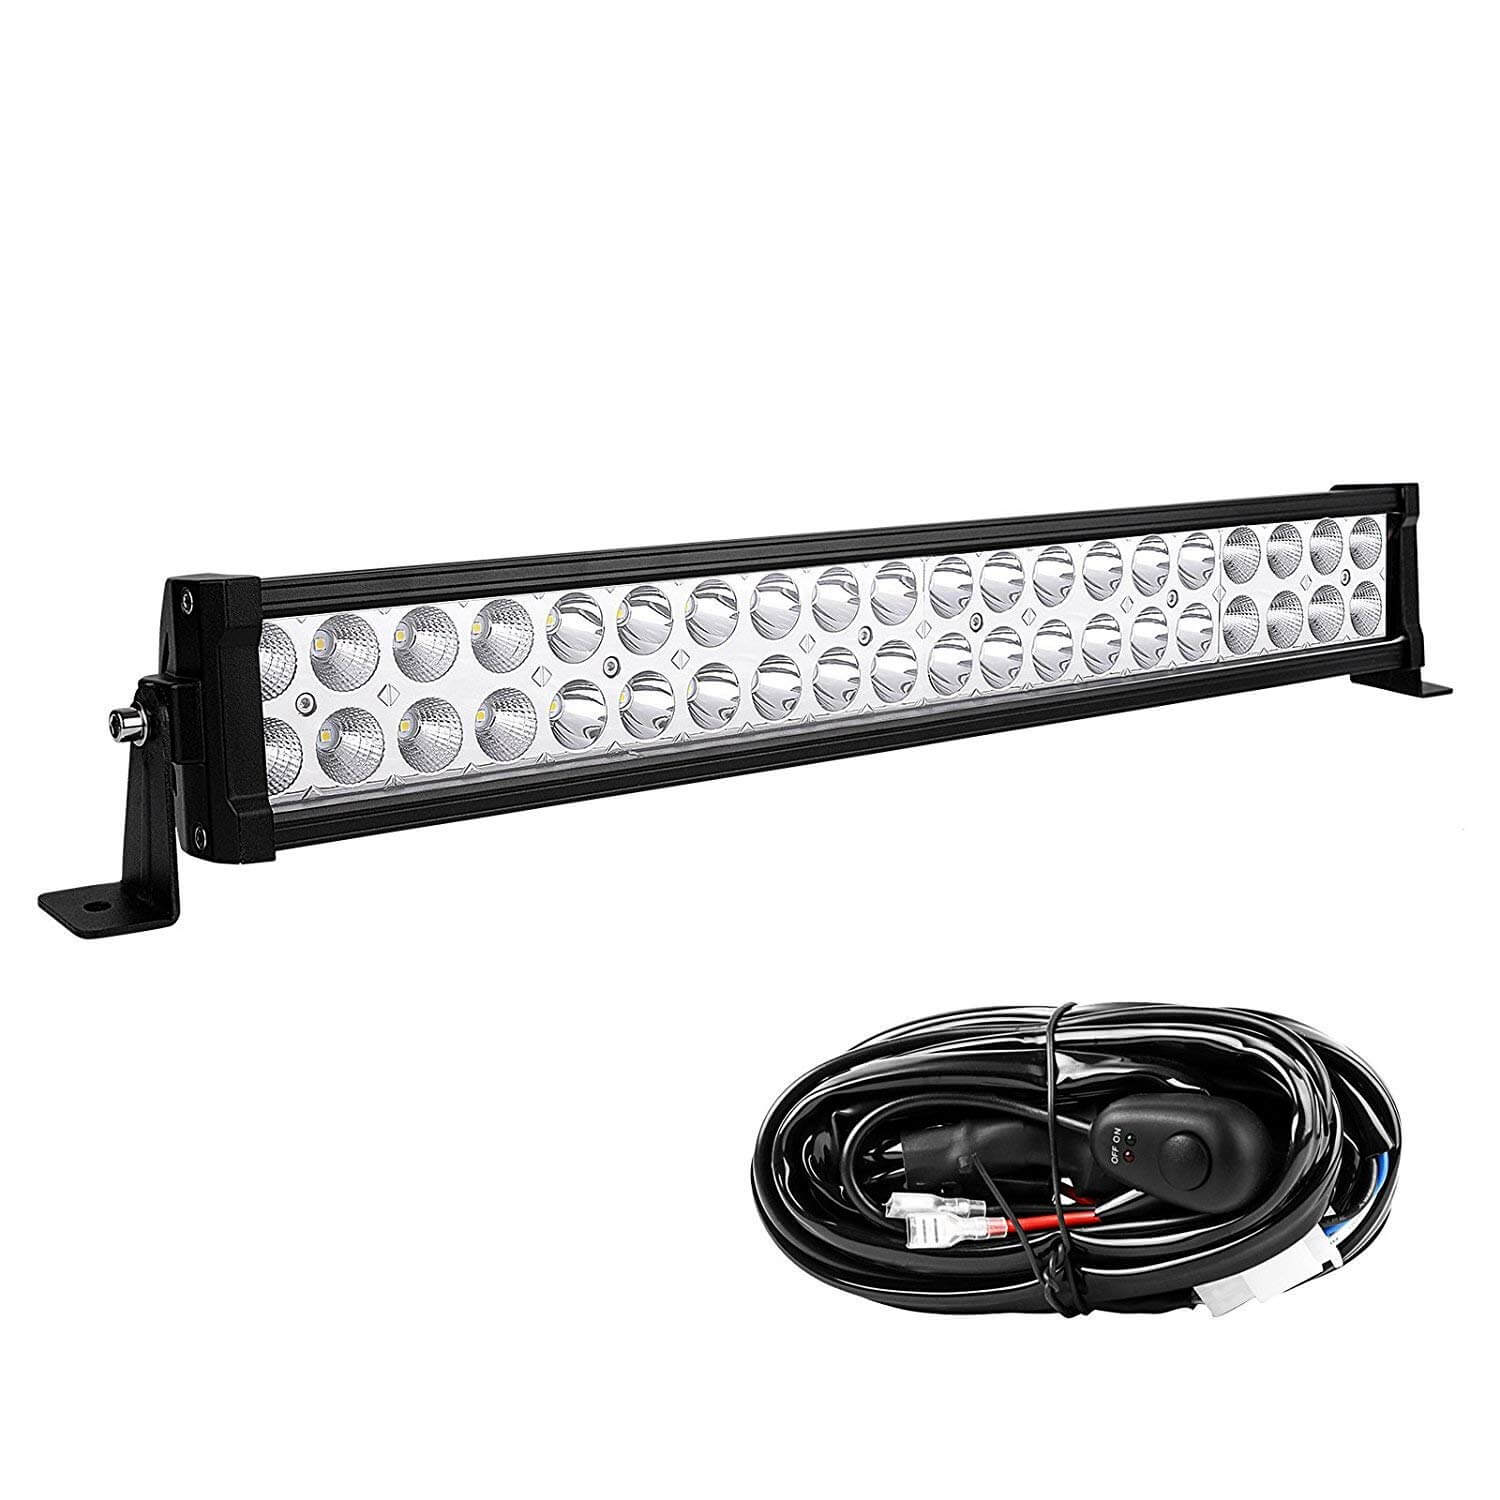 Top 9 Best Led Light Bar Reviews In